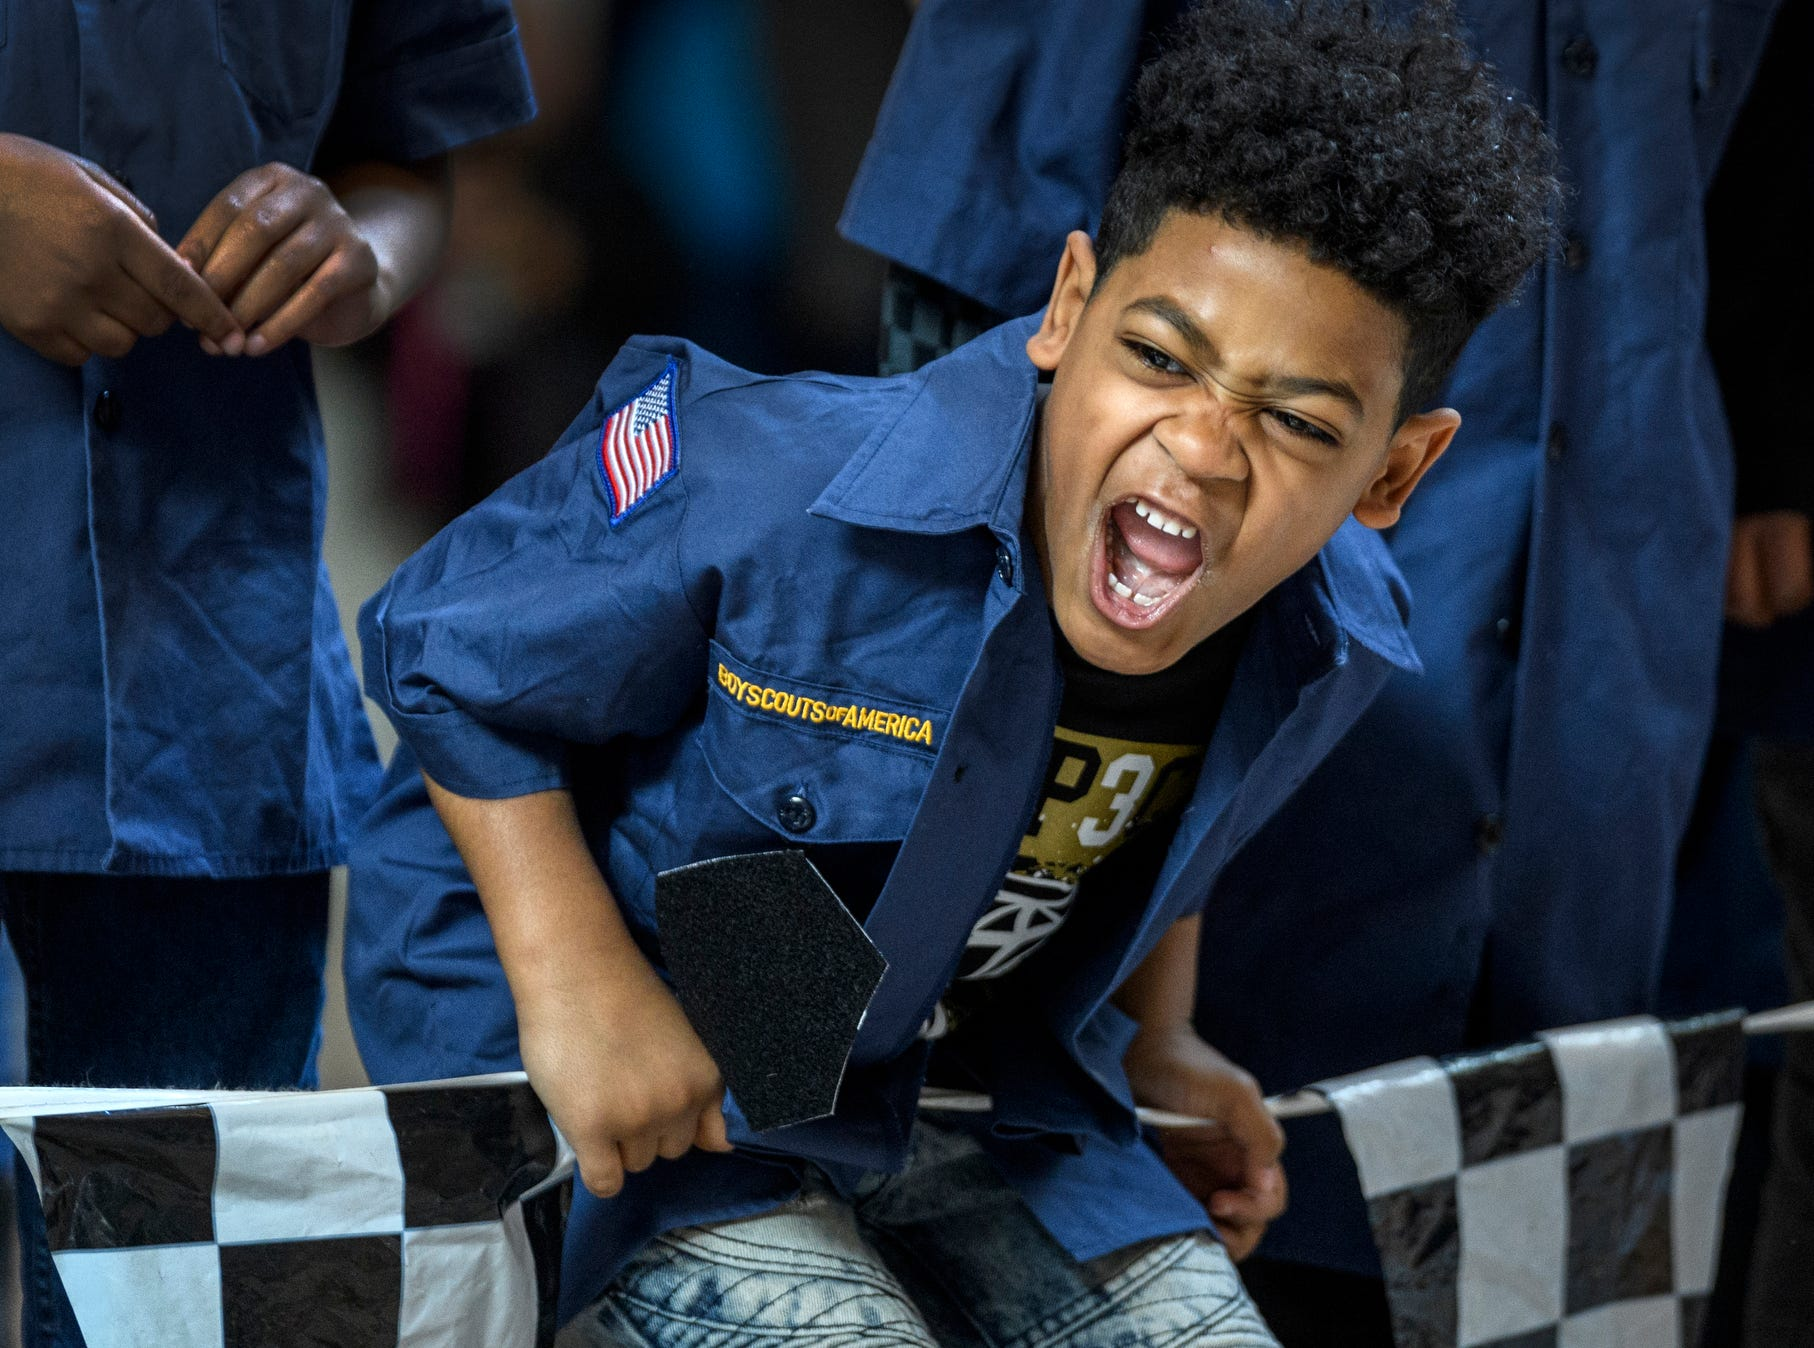 Jerry Hazelwood, a first-grader from Joshua Academy, cheers as he watches his pinewood derby car race down the track during the annual Scoutreach Pinewood Derby competition at Eastland Mall in Evansville, Ind., Saturday, March 16, 2019. Hazelwood won second place in the first-grade division.